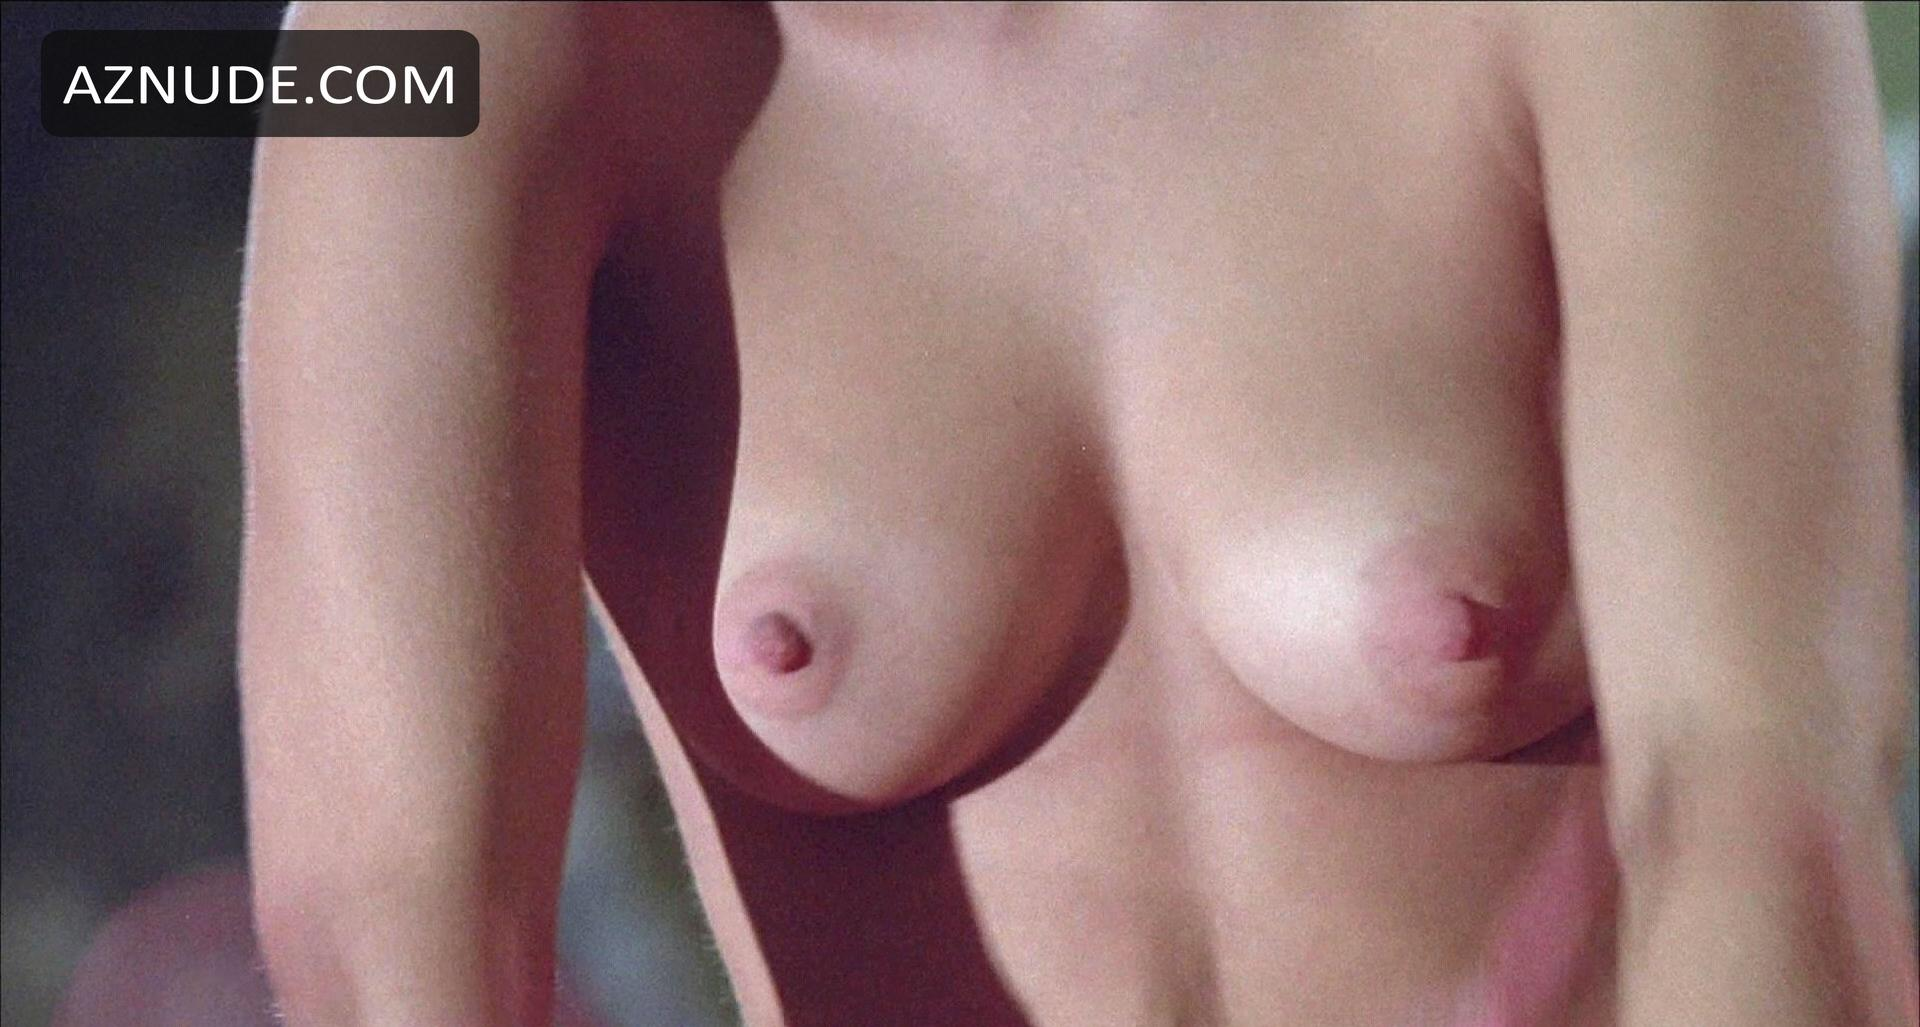 Susan saint james nude think, that